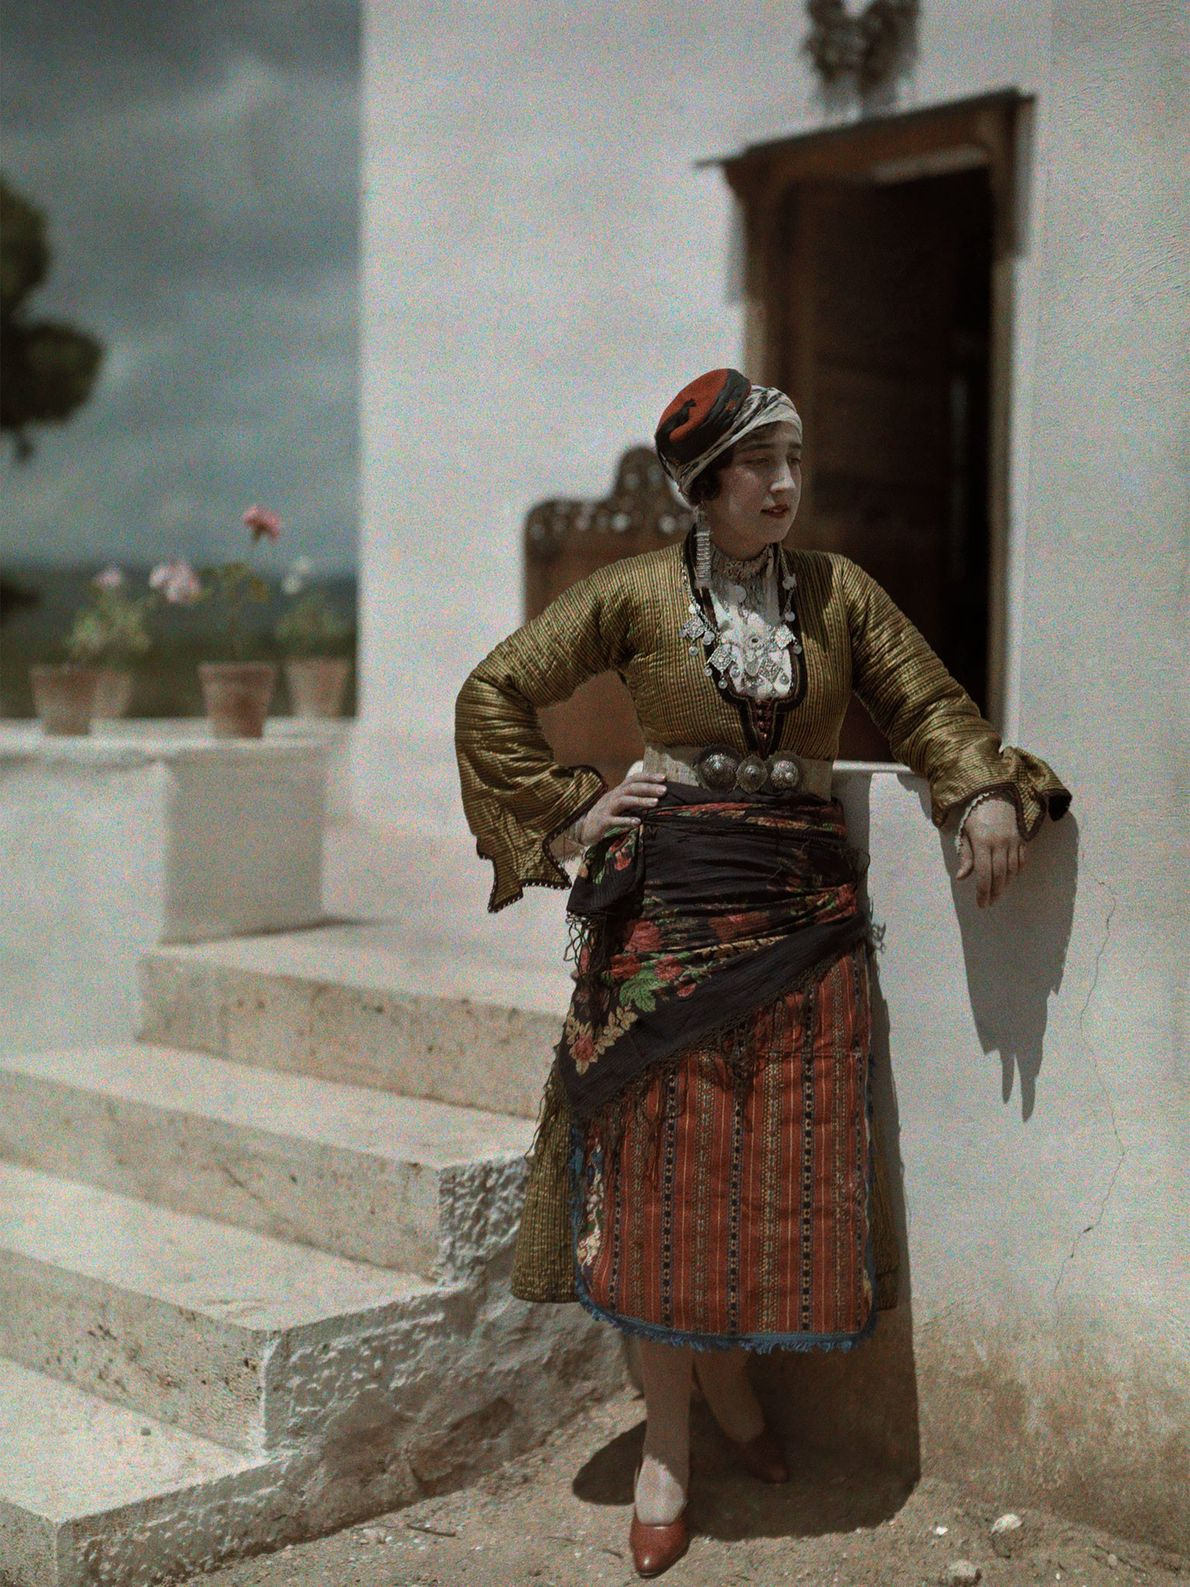 A woman at the Delphic Festival near Kephissia, Greece, poses in a hat and clothing typical ...